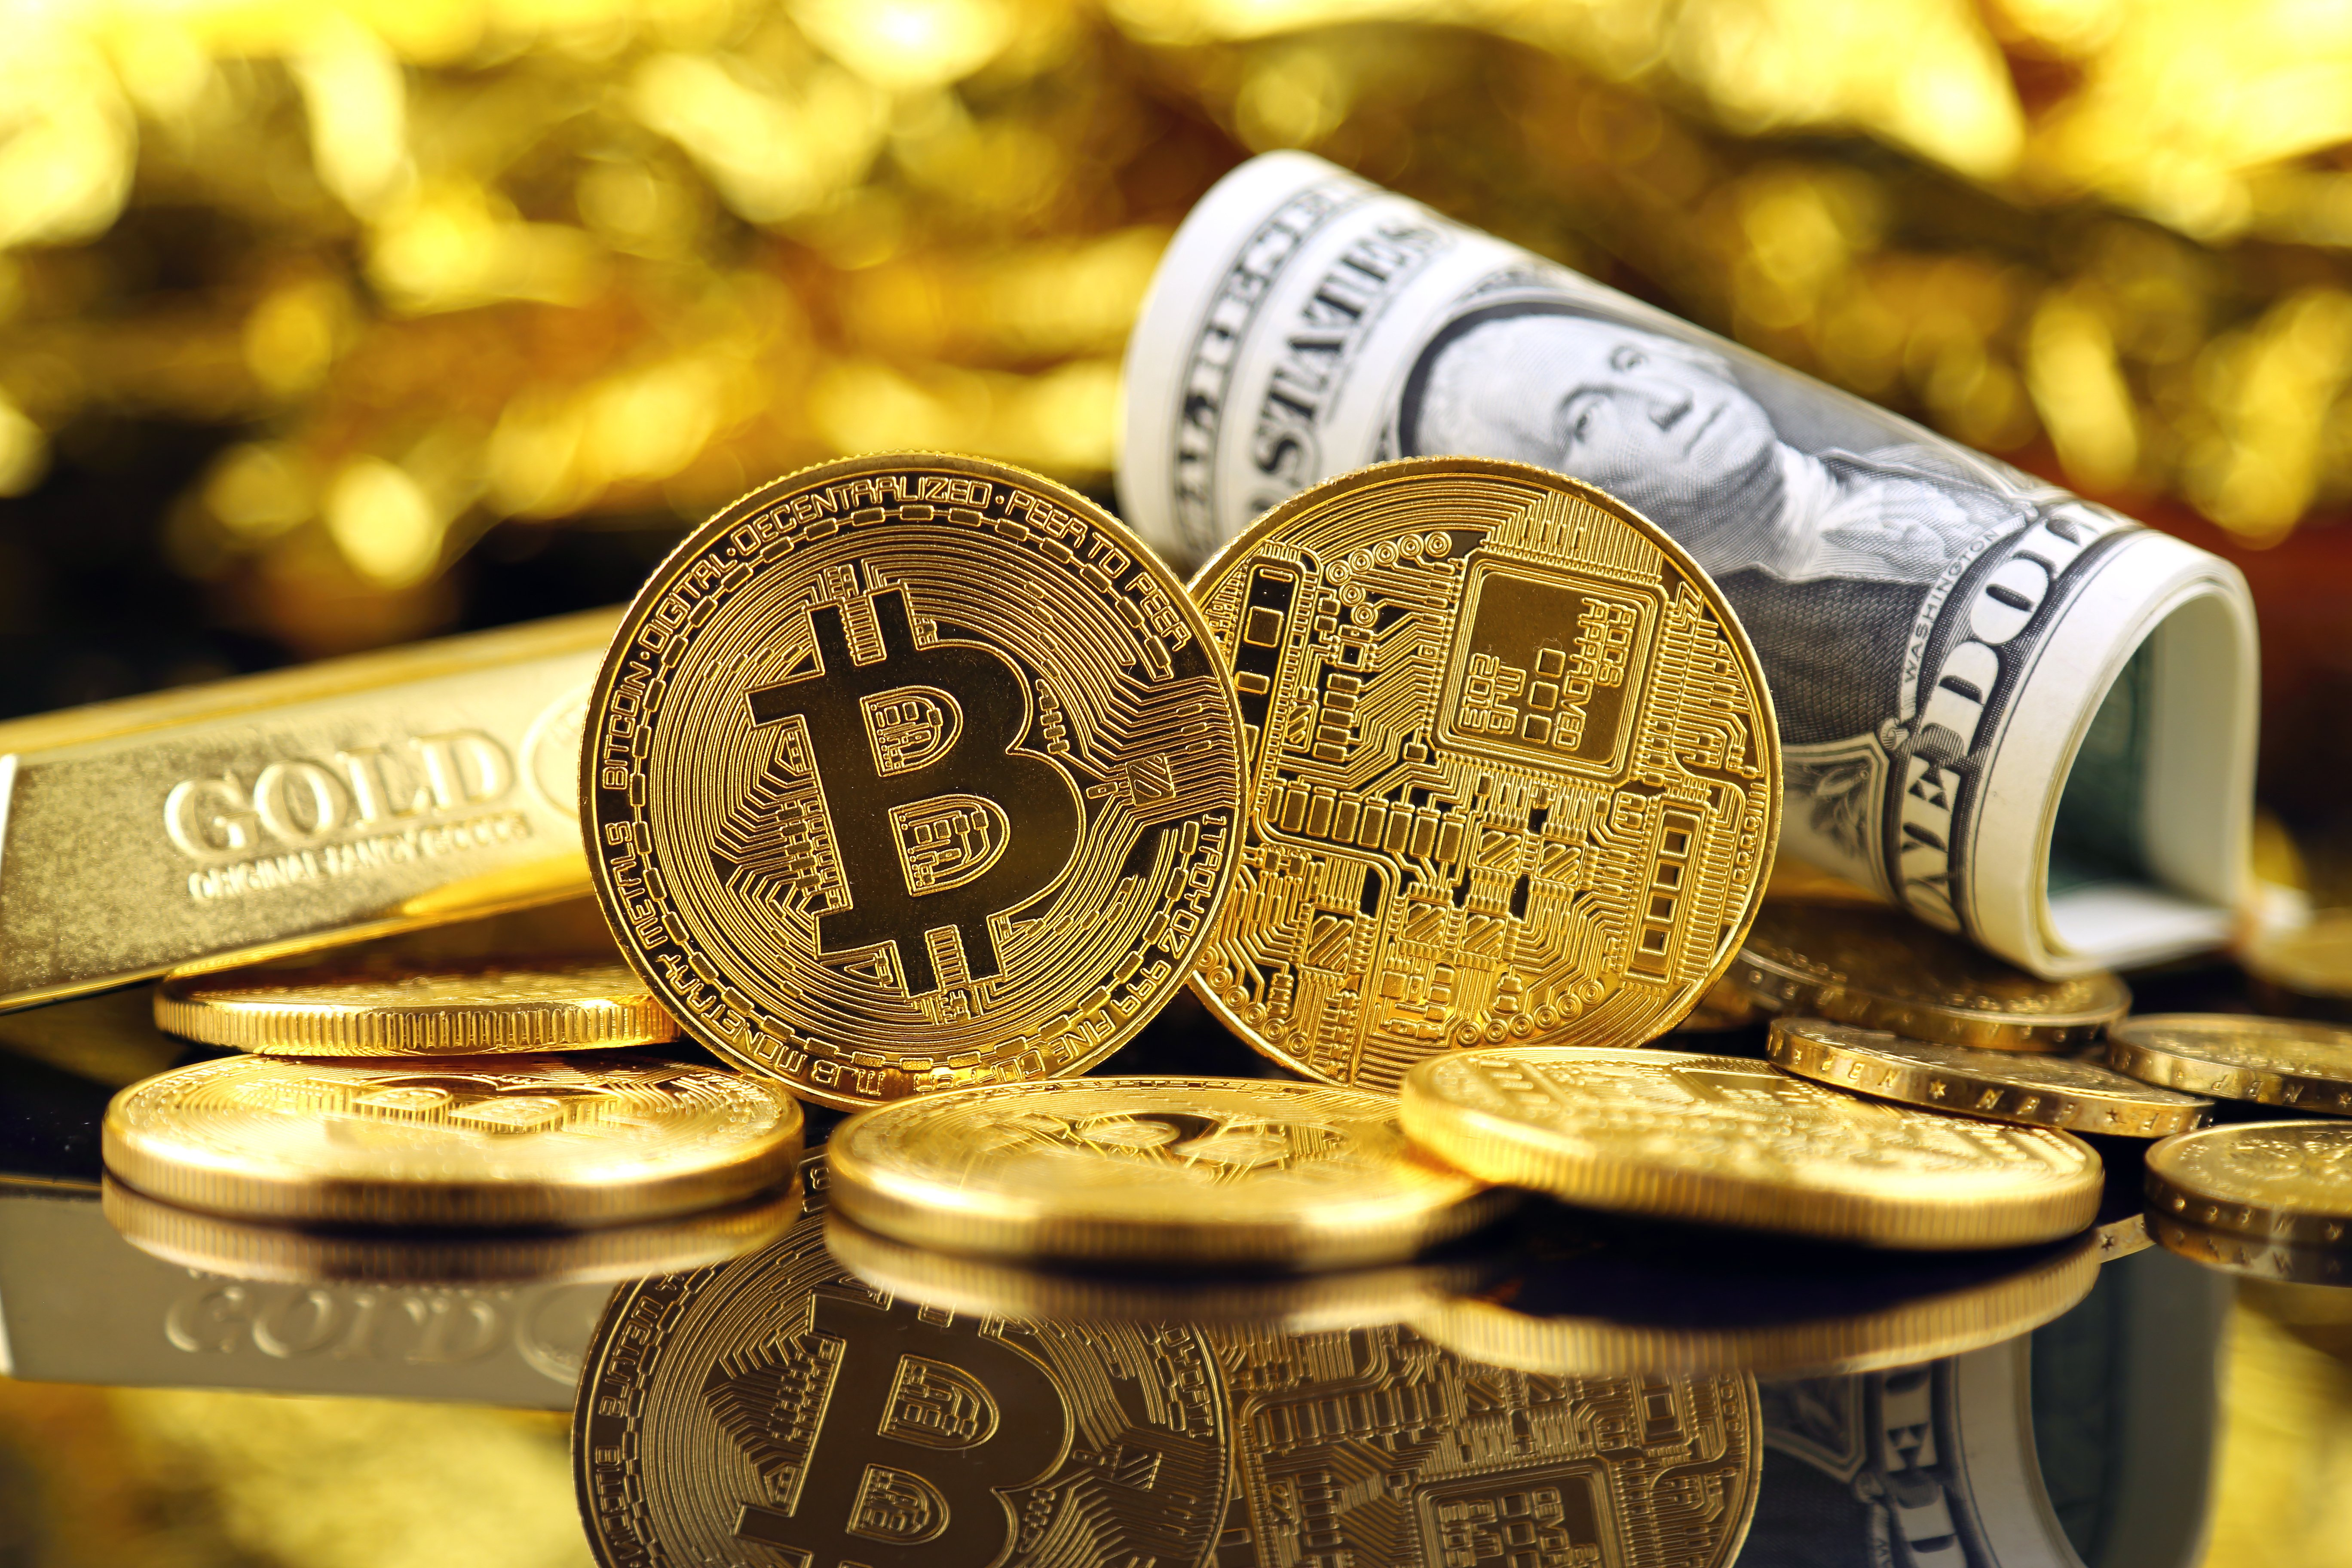 physical bitcoins and dollar notes